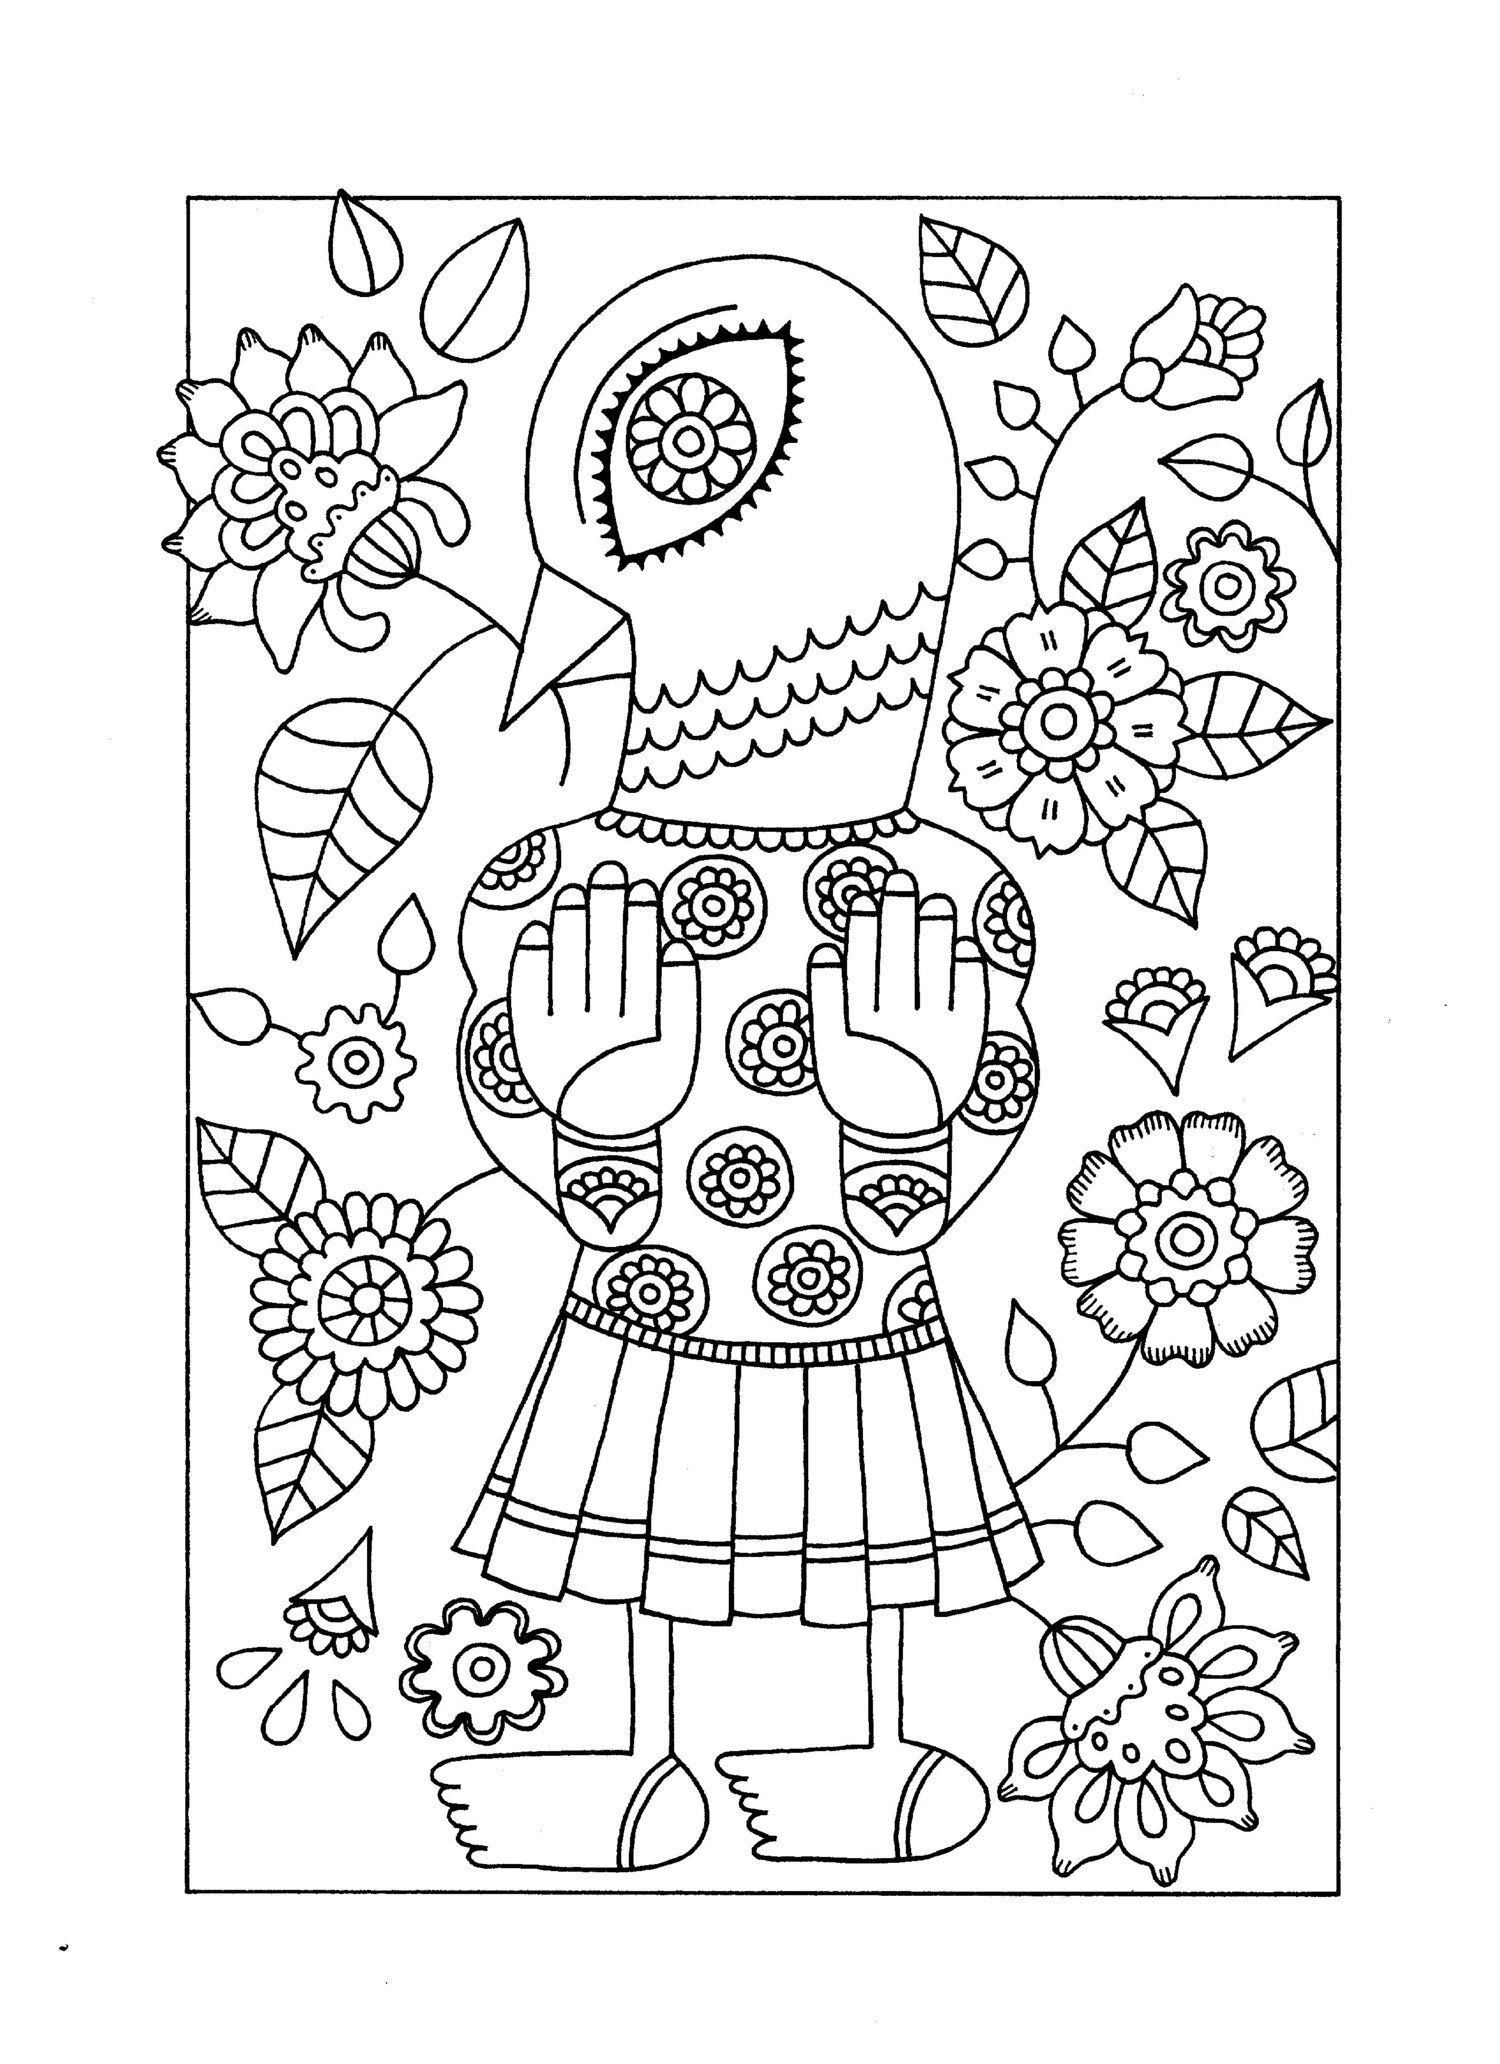 Chinese coloring book line sketch drawing textbook Chinese ancient ... | 2064x1500